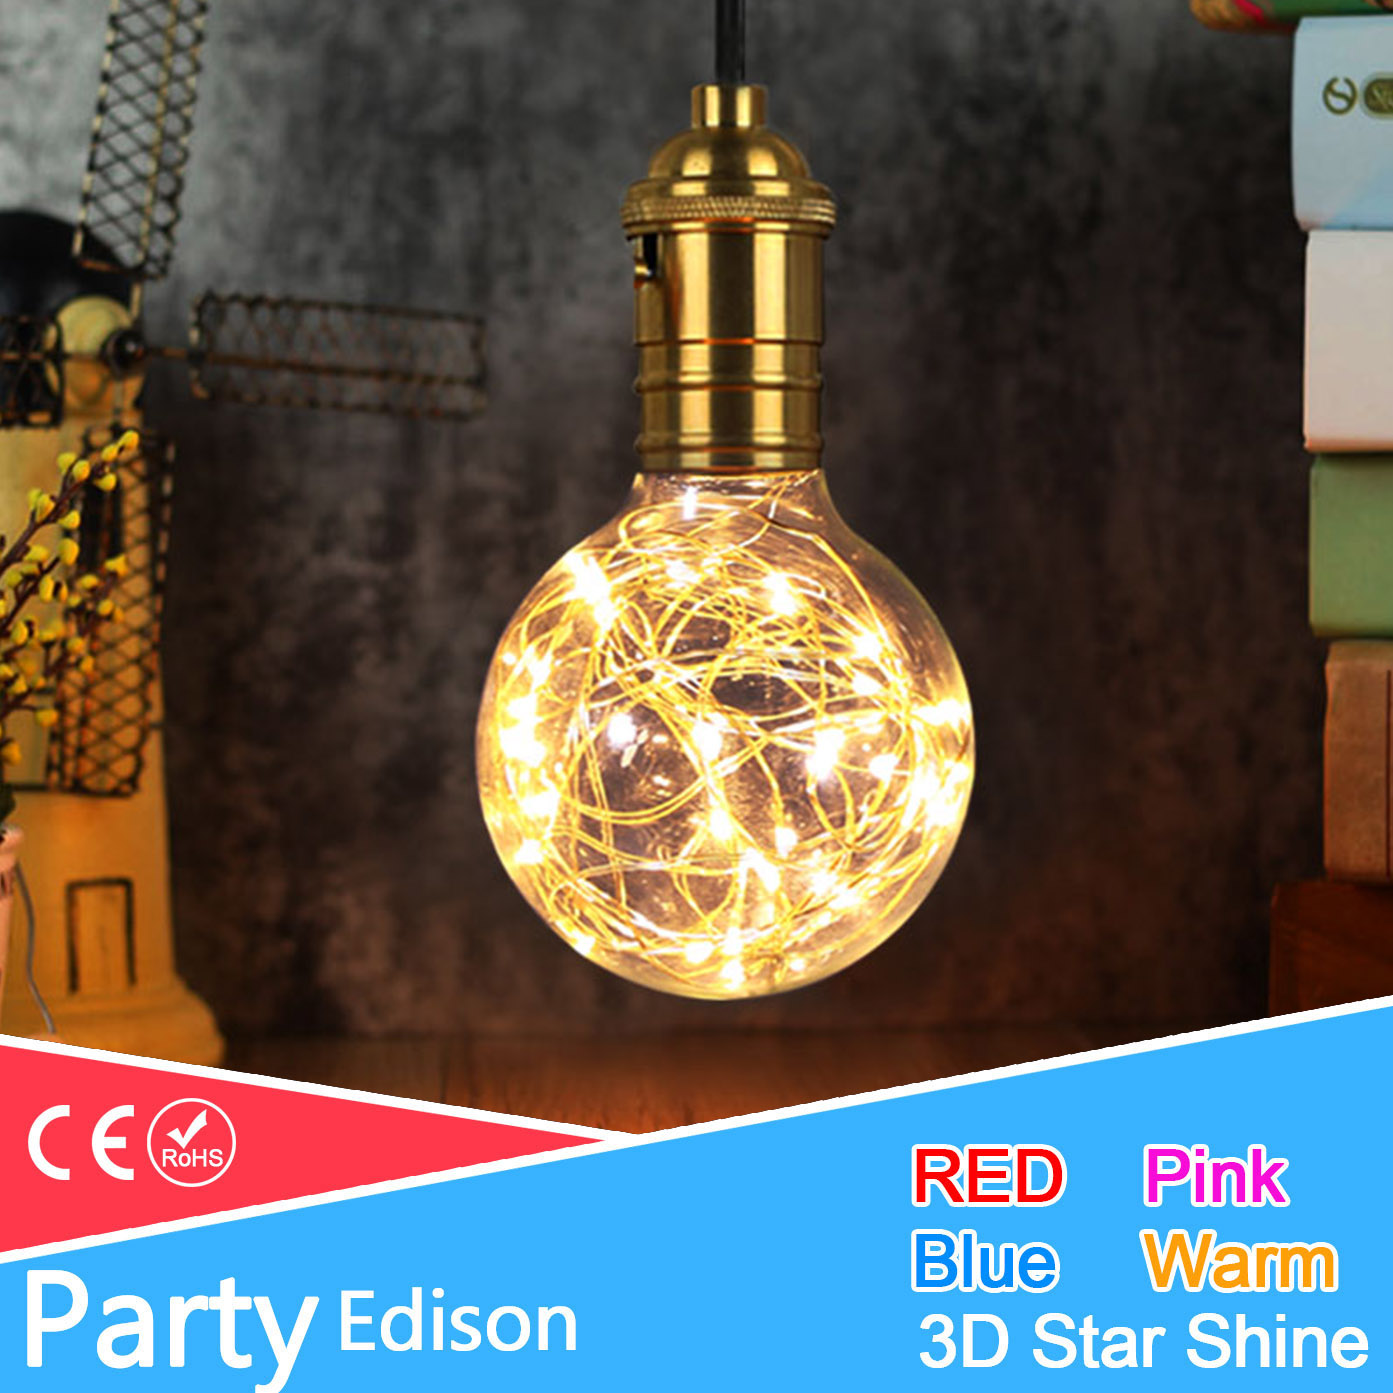 3D Star/Colour Fairy G95 Led Edison Light E27 220v LED Bulb Lamp String Filament Retro Glass Lampara Ampoule Christmas Wedding greeneye 1 4pcs color led bulb edison 220v e27 filament led lamp light st64 retro green blue red pink warm white ampoule lampara